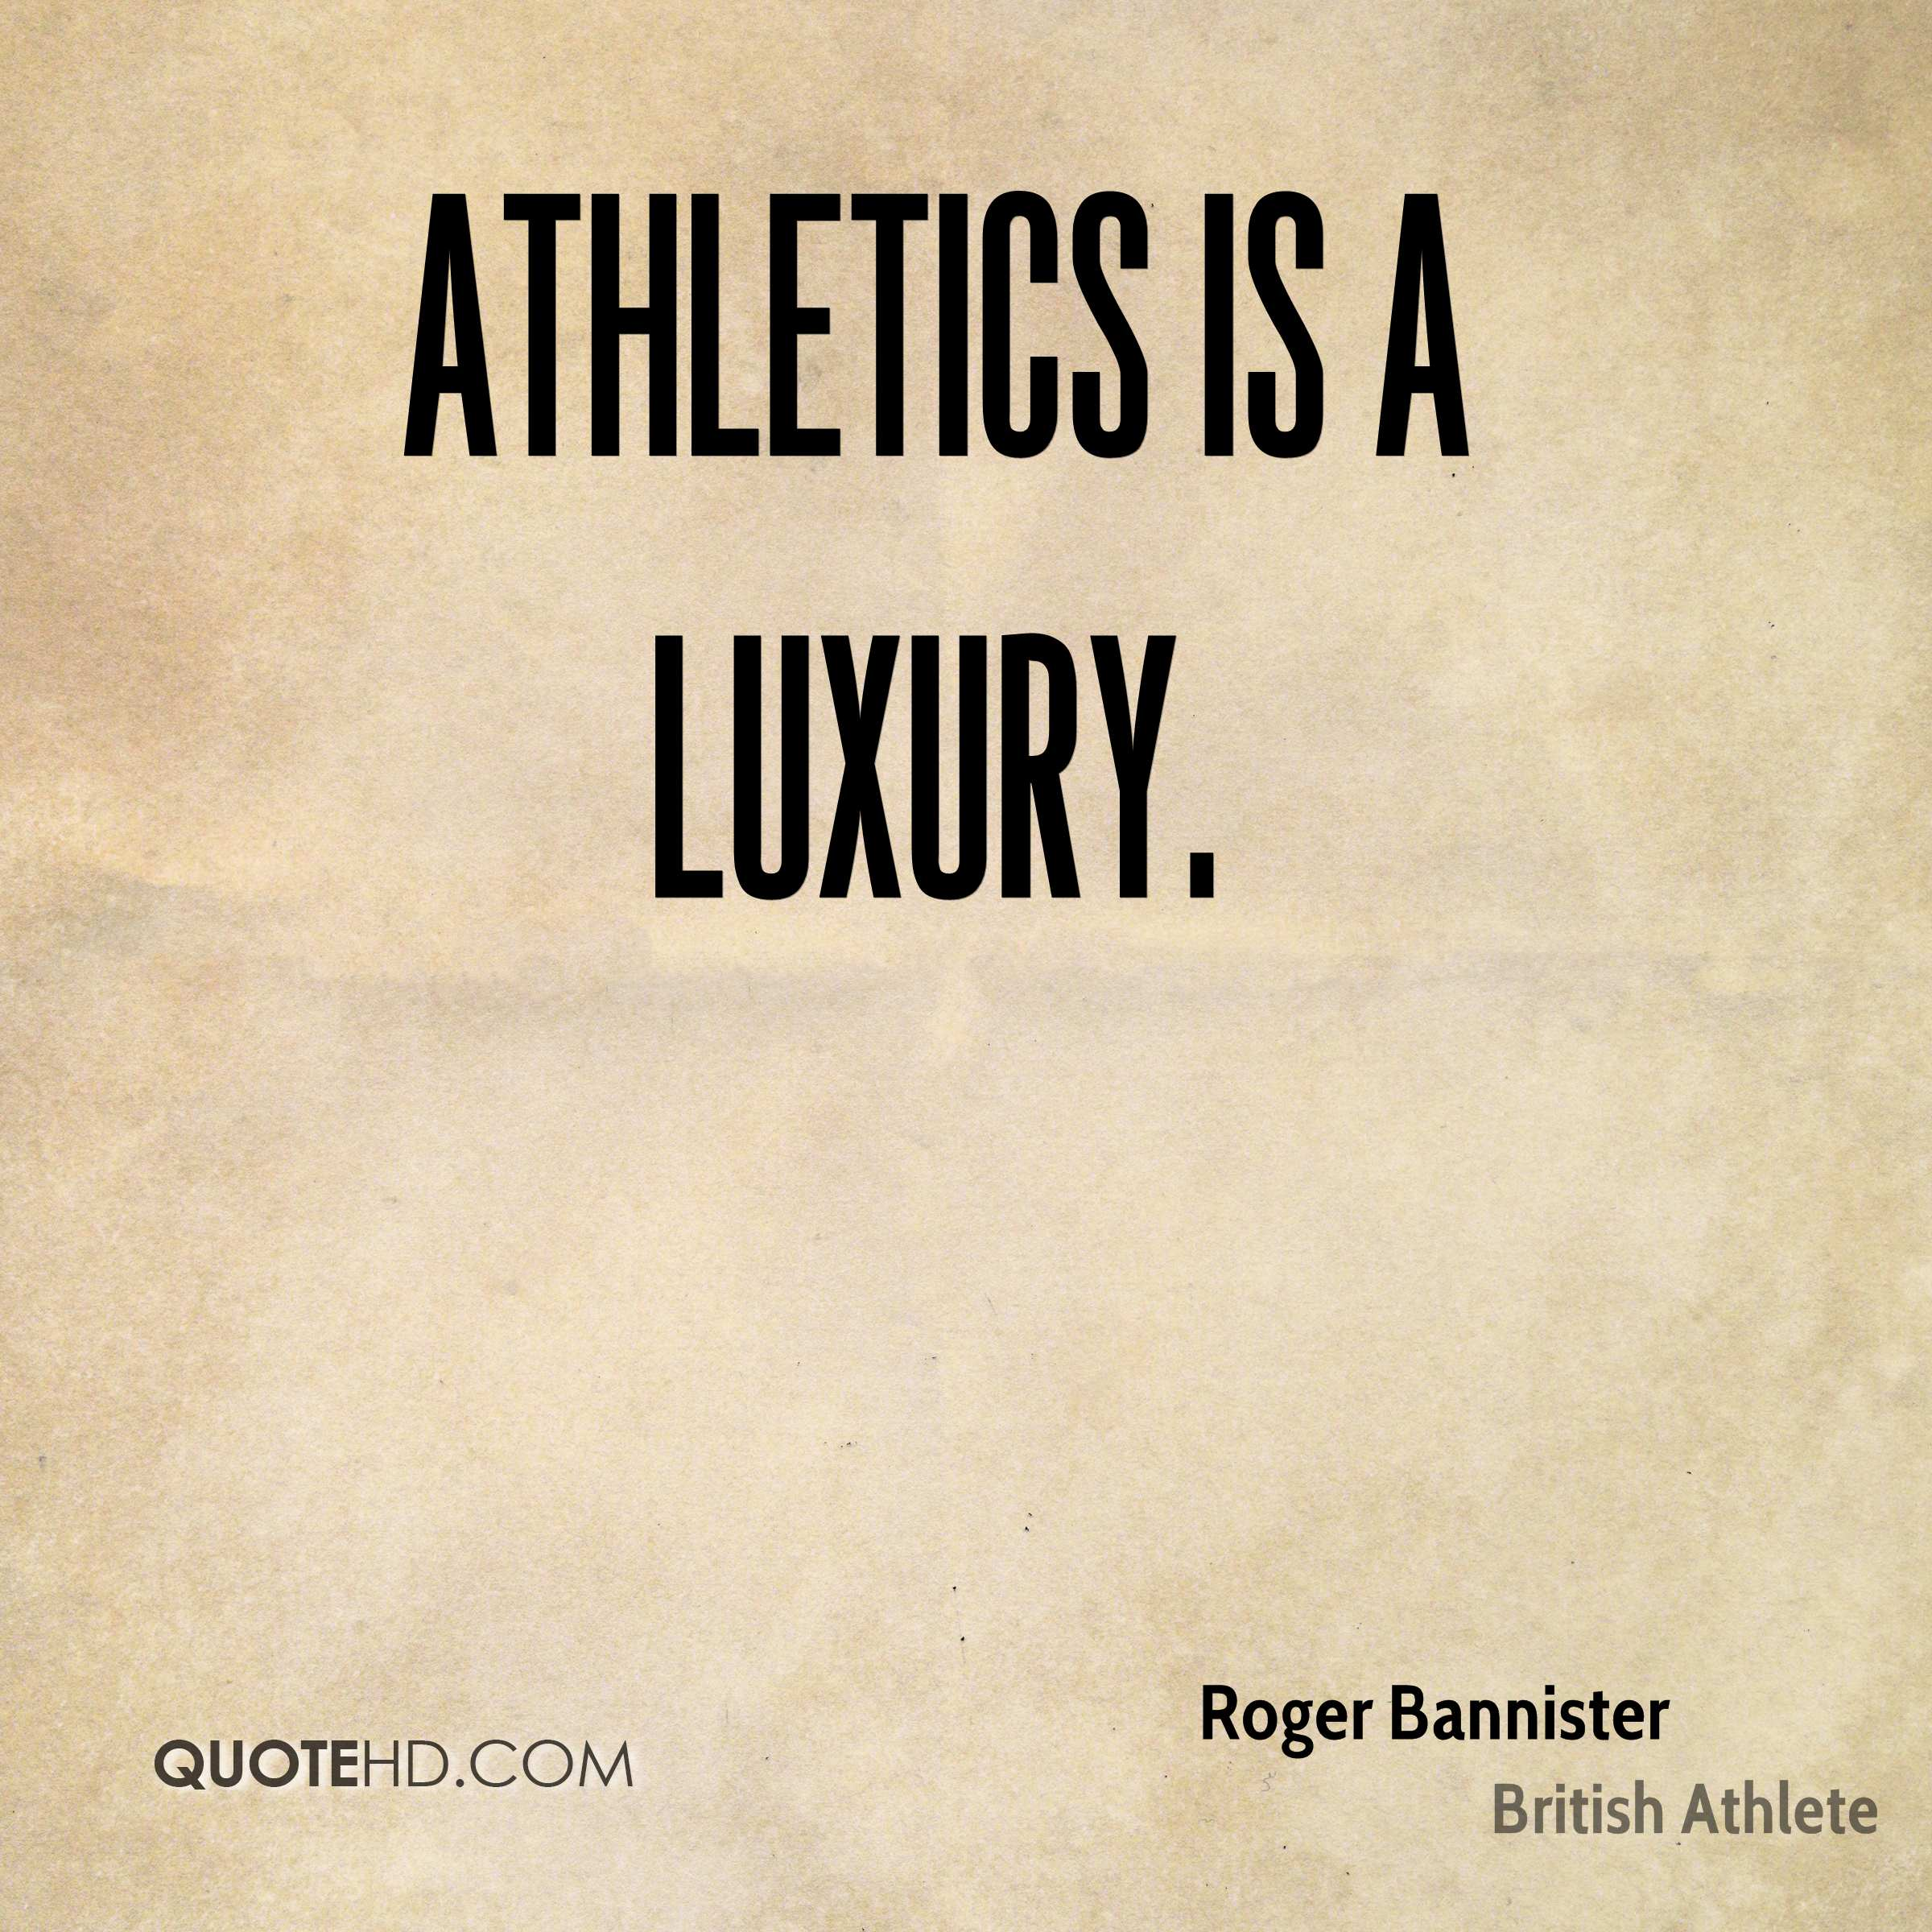 Athletics is a luxury.